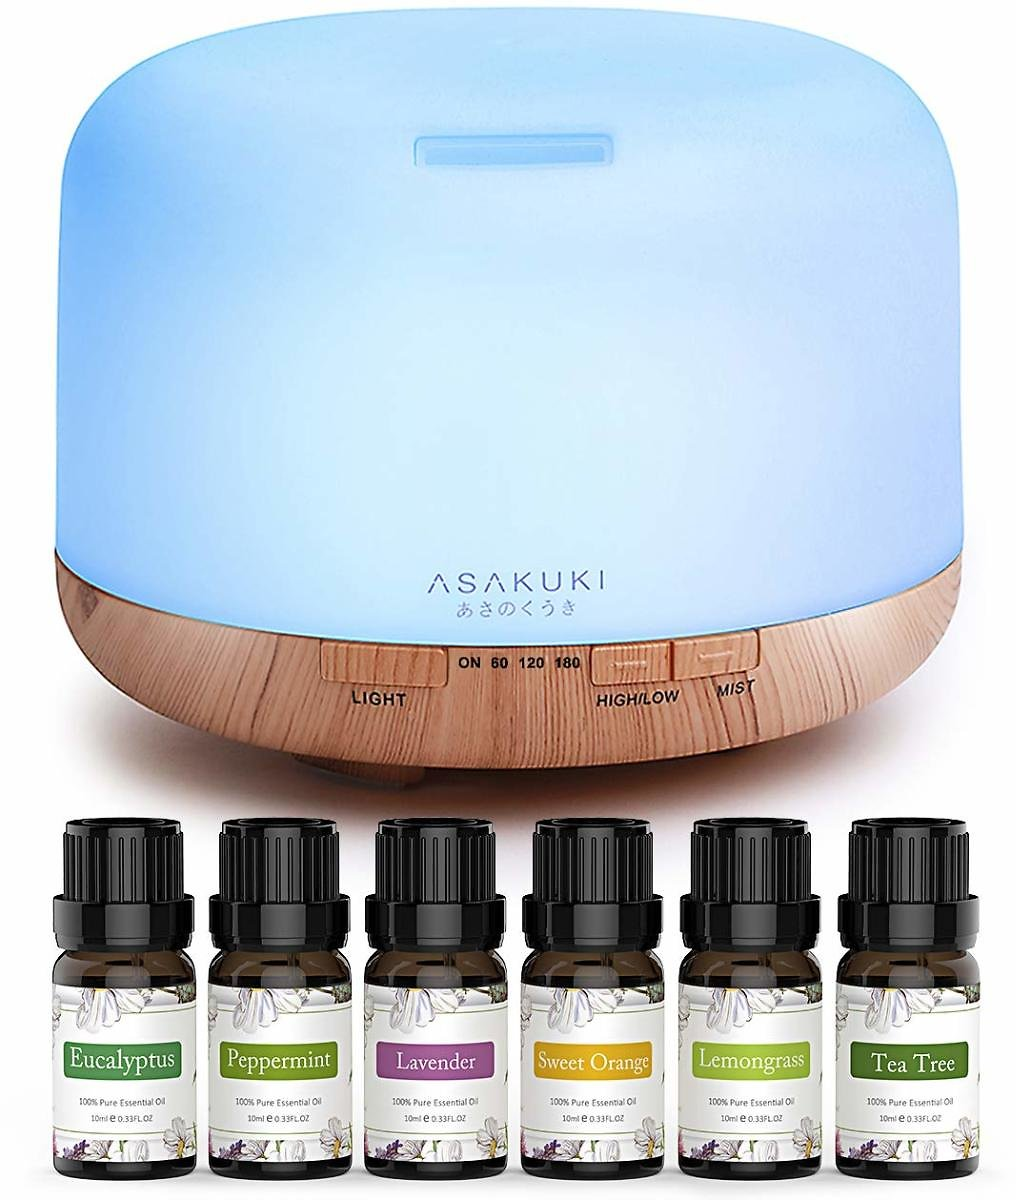 ASAKUKI Essential Oil Diffuser with Essential Oils Set, 500ml Aromatherapy Diffuser with Top 6 100% Pure Natural Essential Oils, 14 LED Colors and Auto Shut-Off: Kitchen & Dining